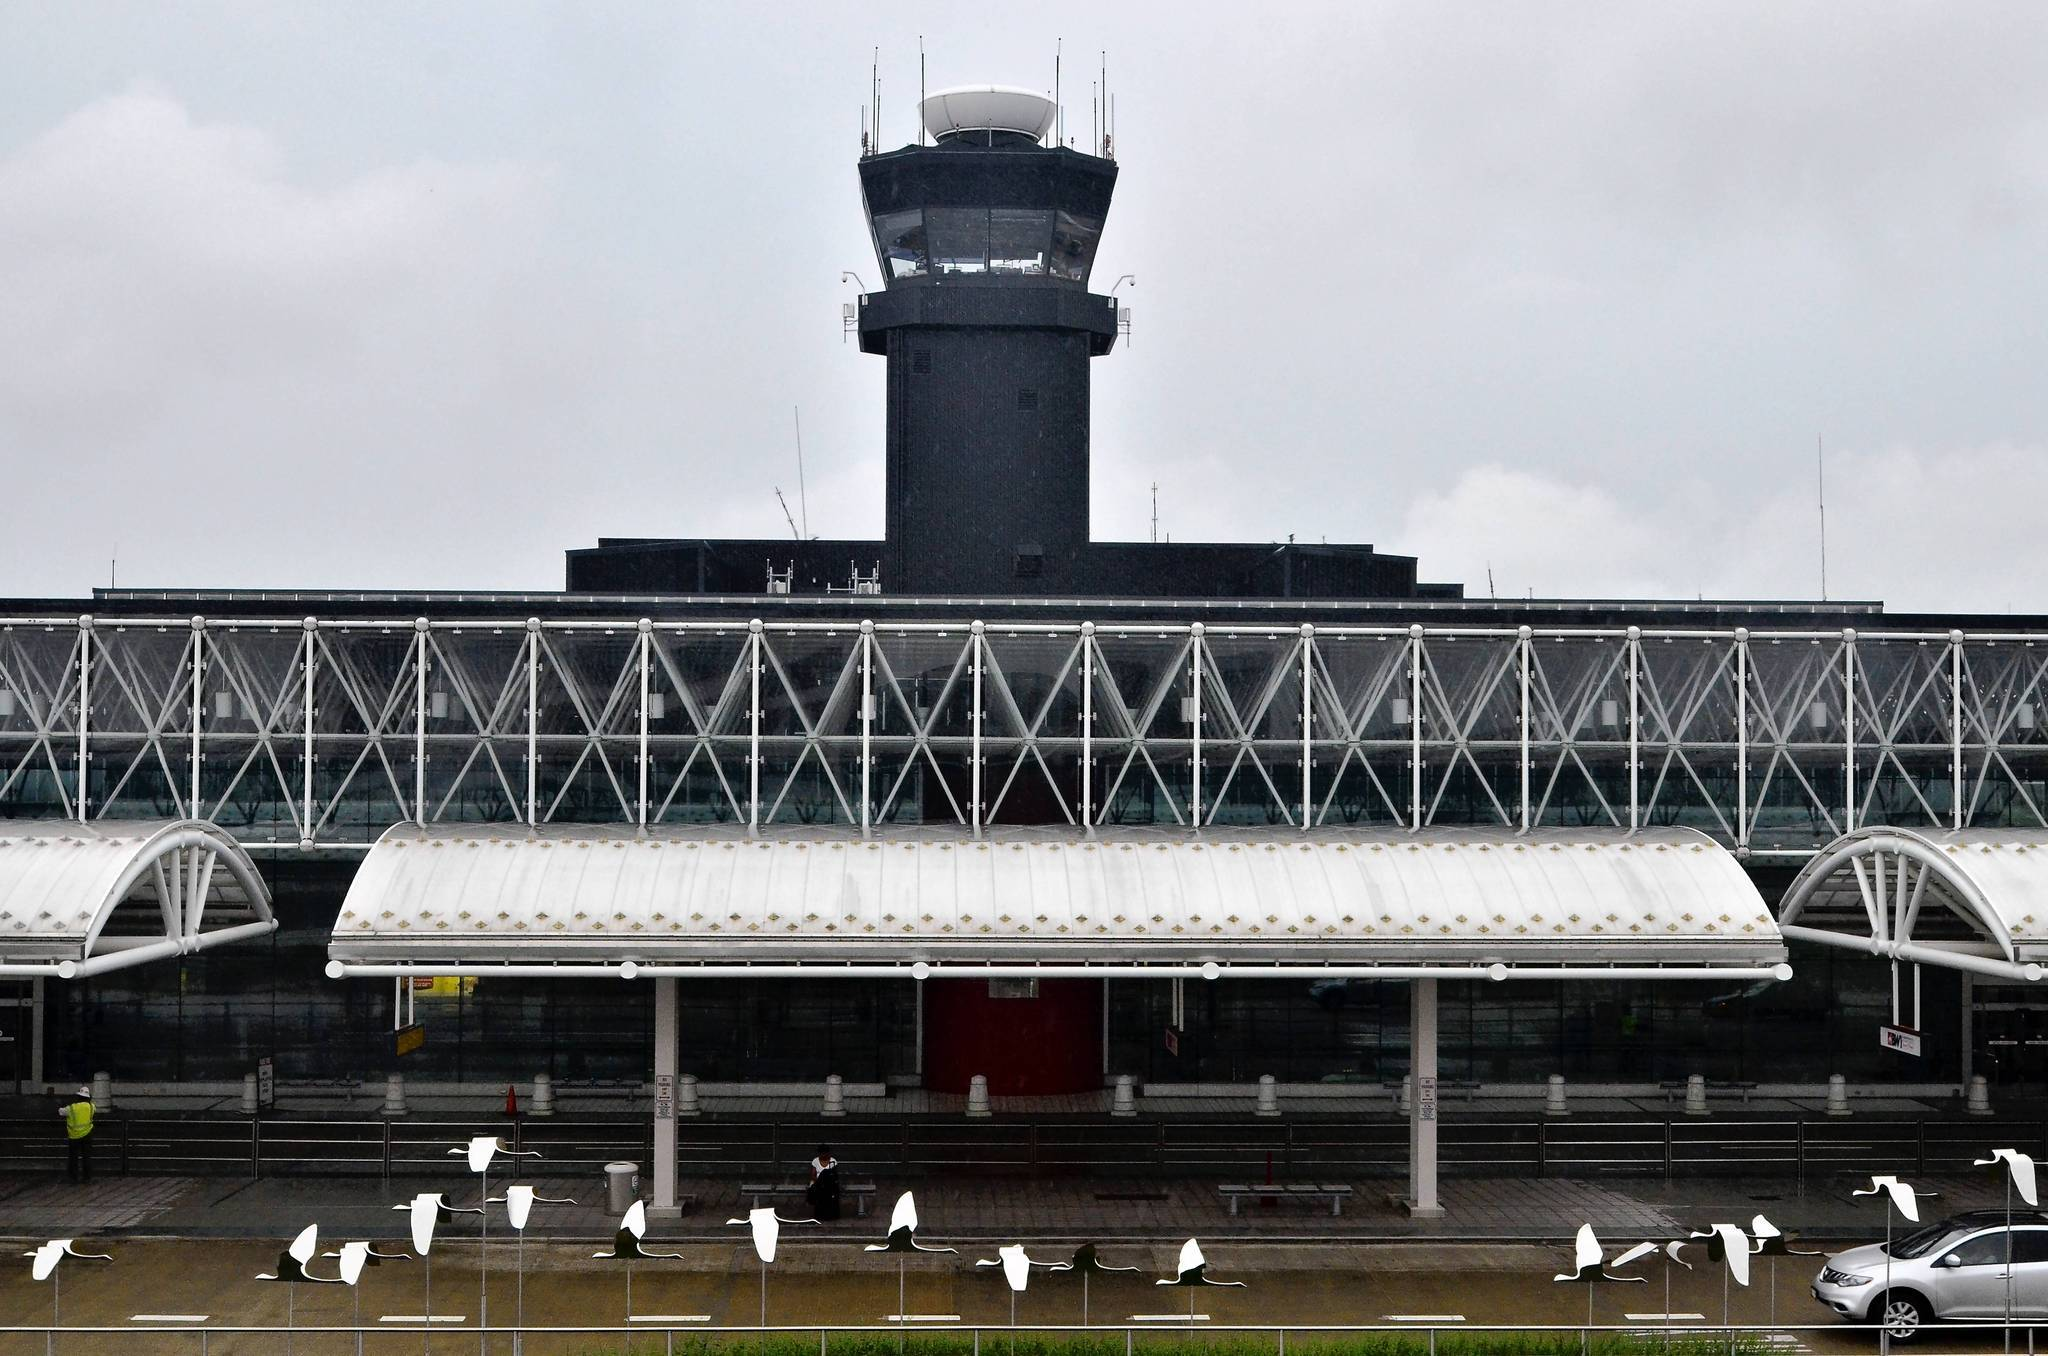 The current air traffic control tower at BWI would be razed or turned into office space when the new one opens.